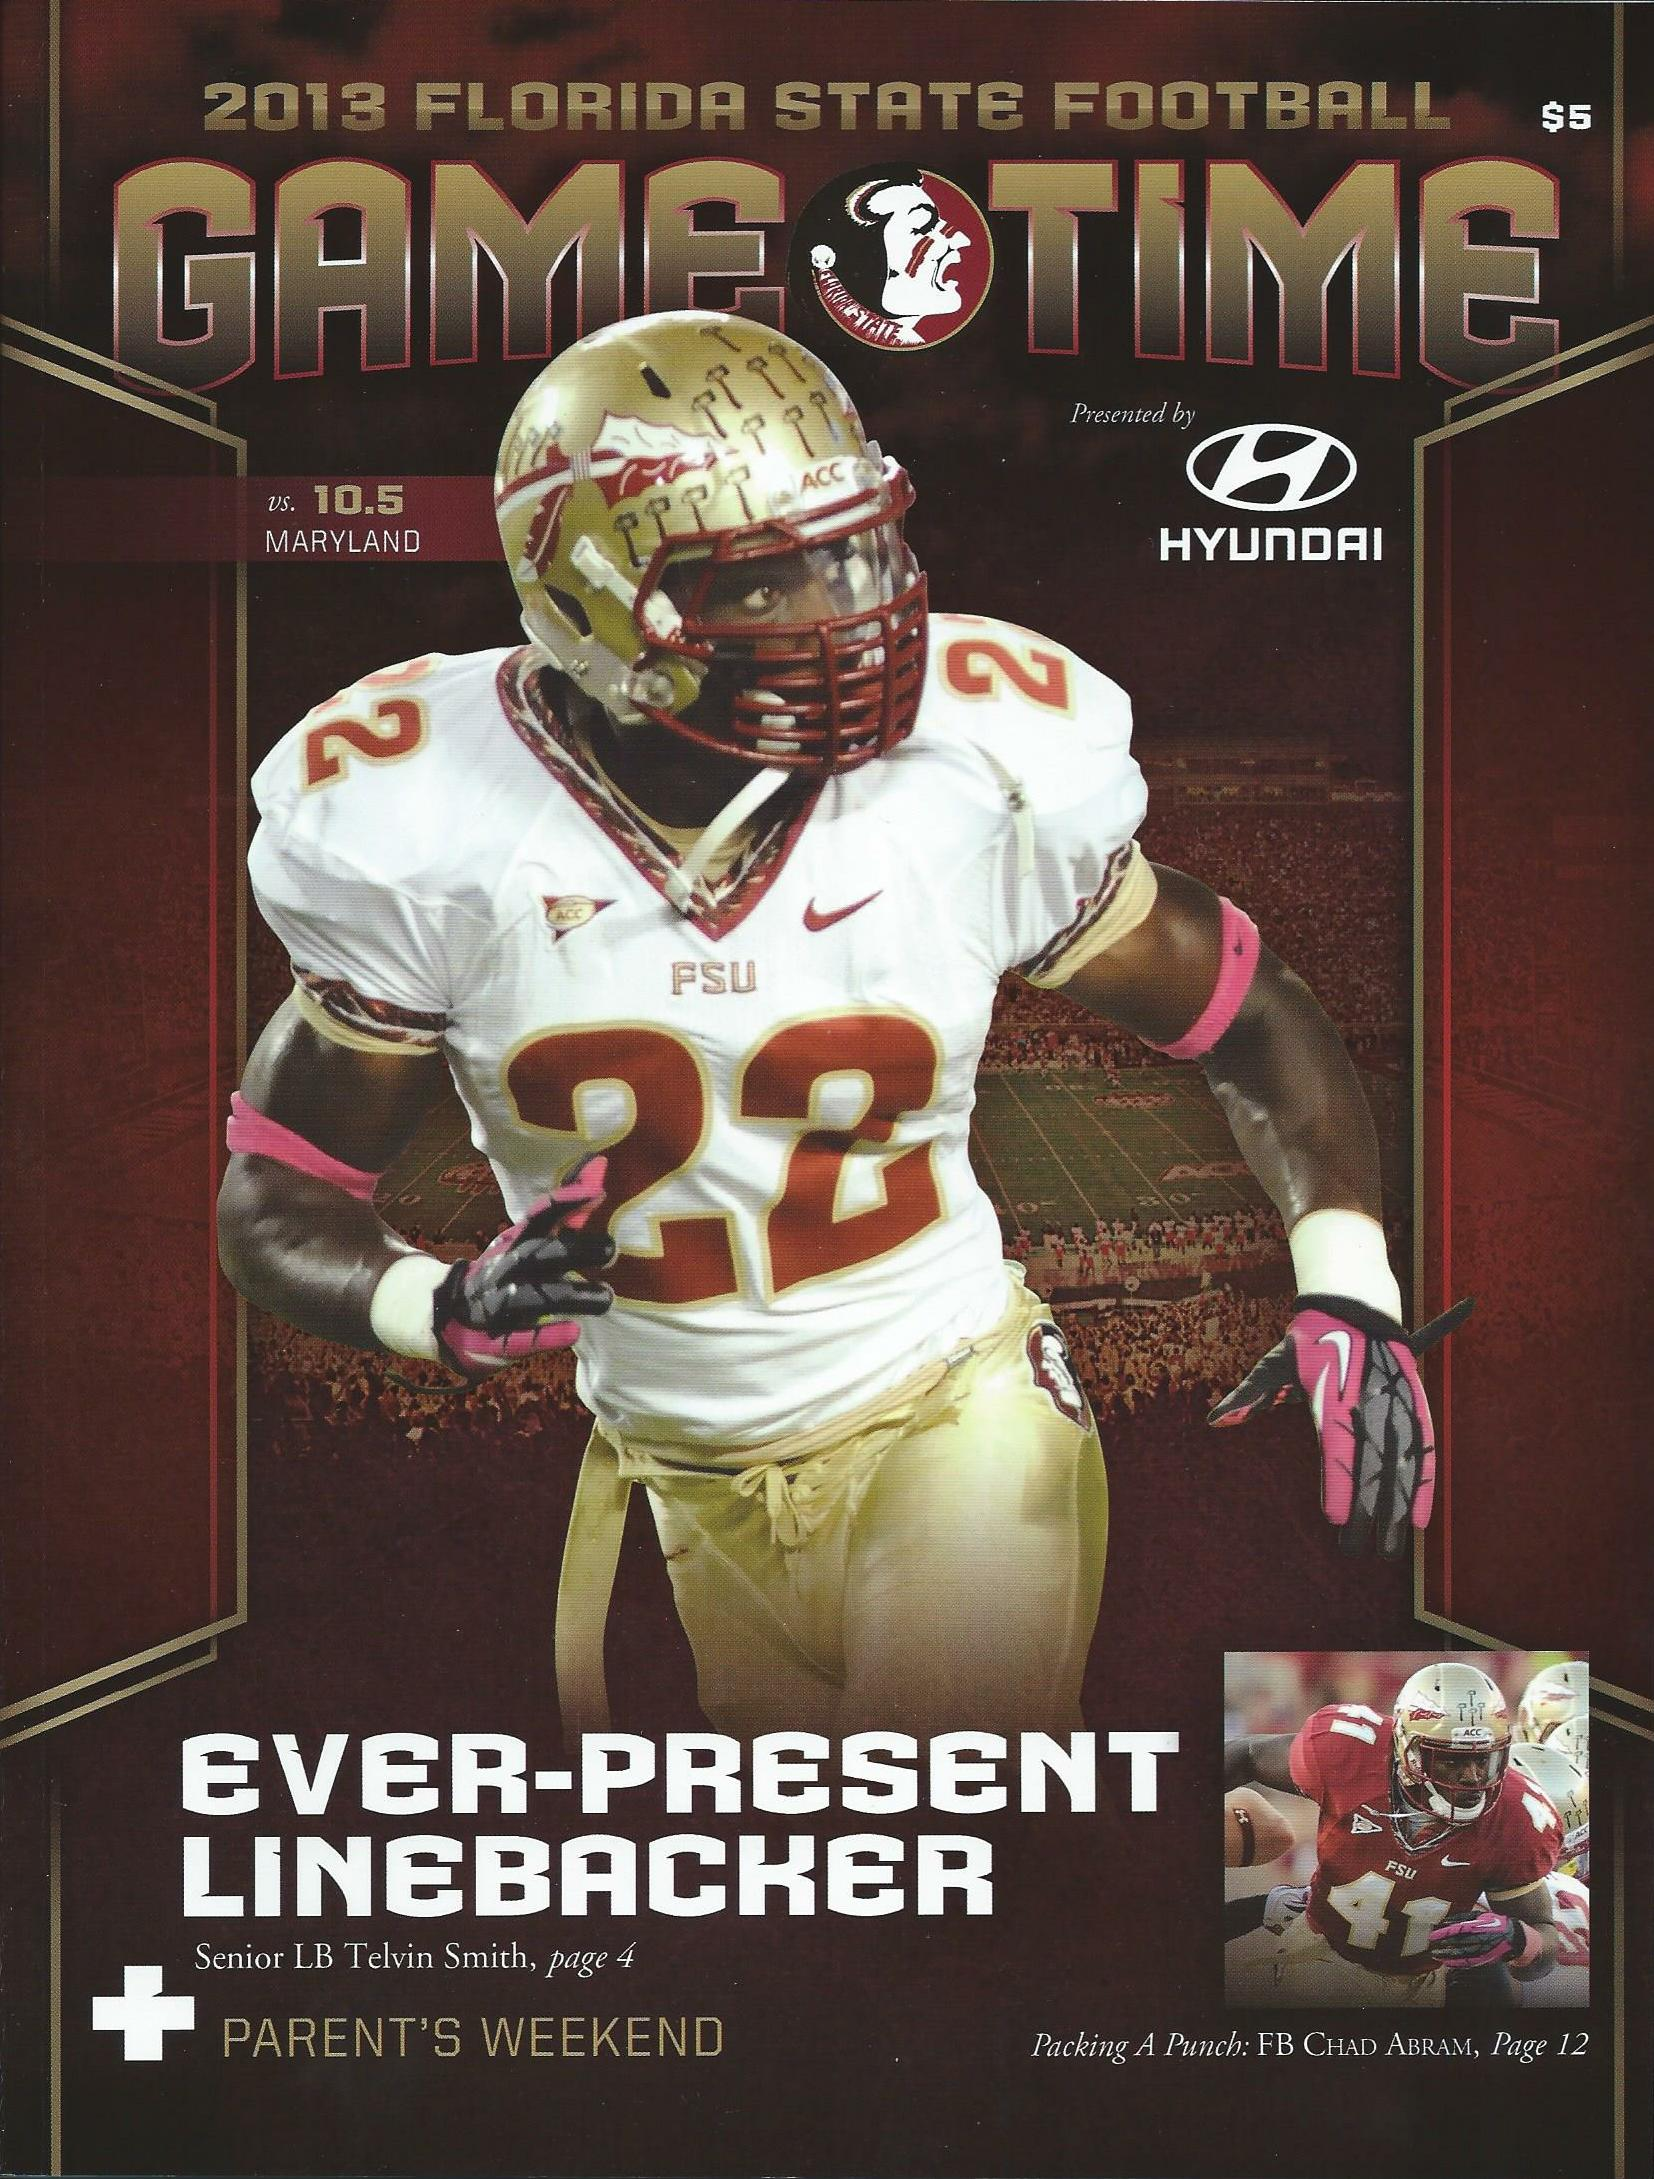 Florida state football 2013 year in review click here for program cover voltagebd Image collections